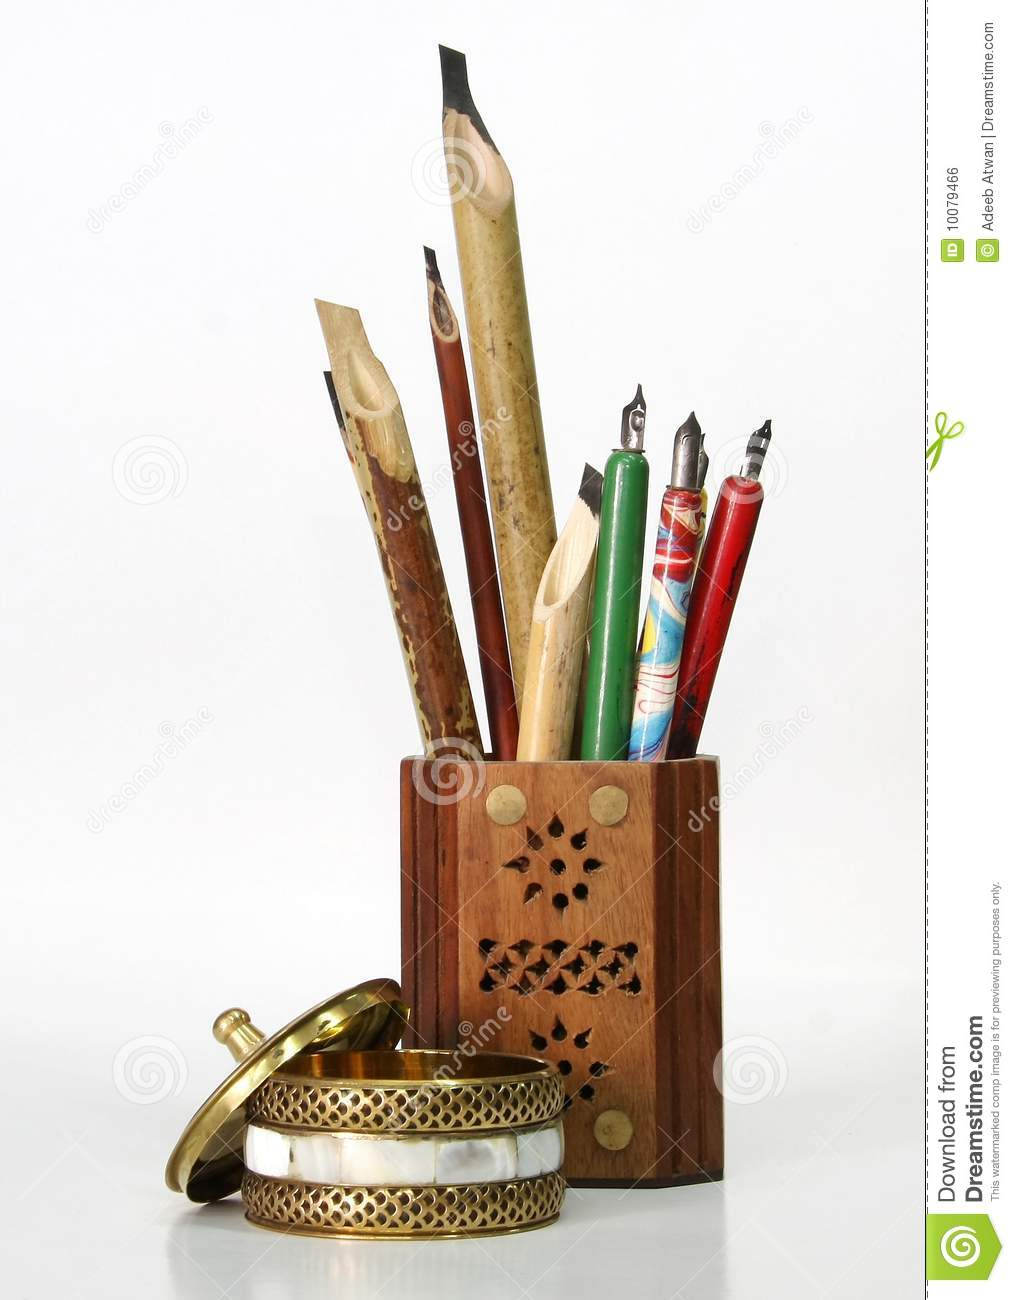 Calligraphy tools royalty free stock image image 10079466 Arabic calligraphy tools